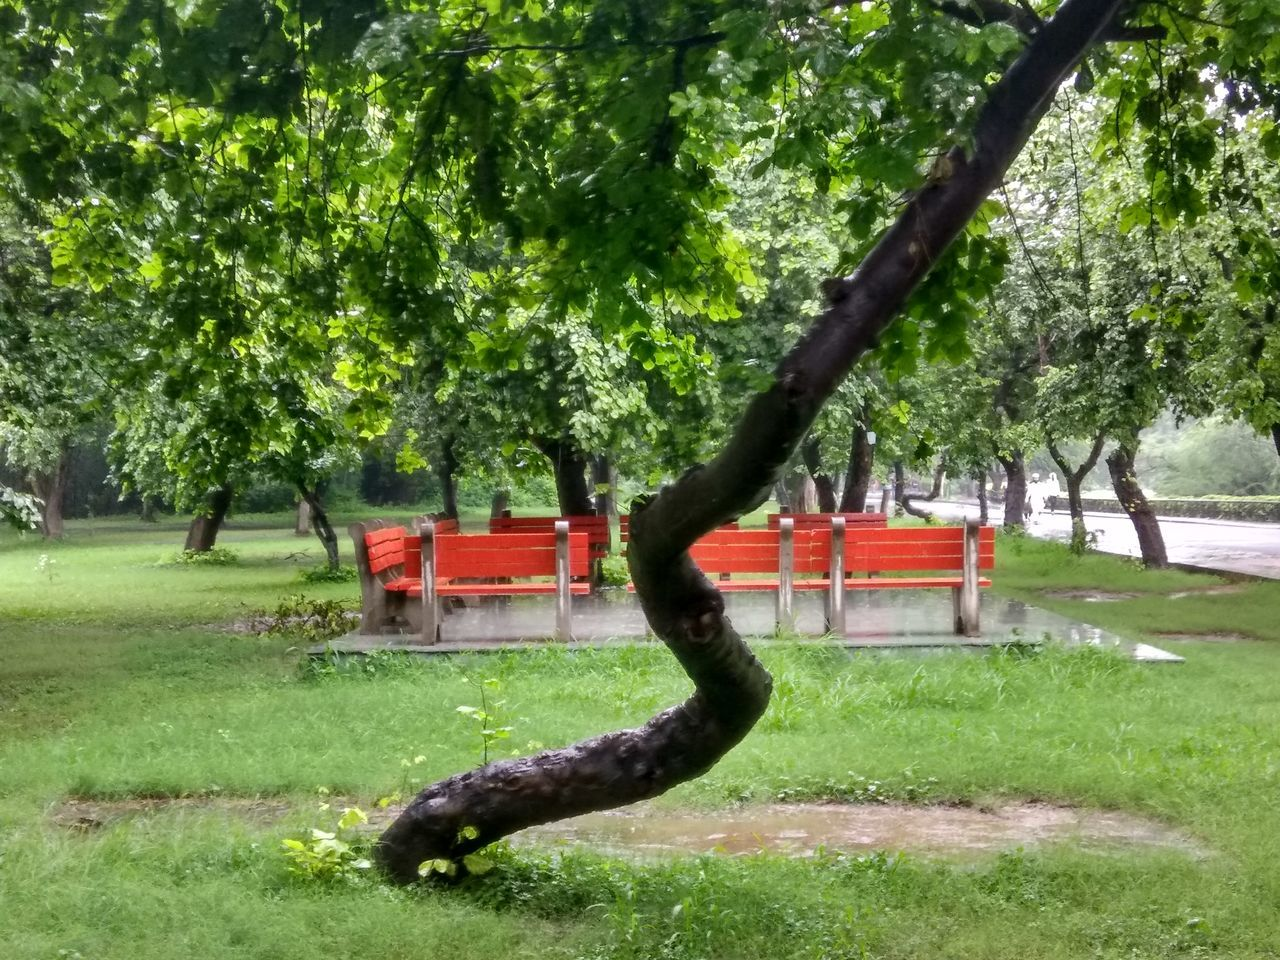 tree, grass, nature, green color, park - man made space, beauty in nature, growth, no people, day, tranquility, outdoors, grassland, water, branch